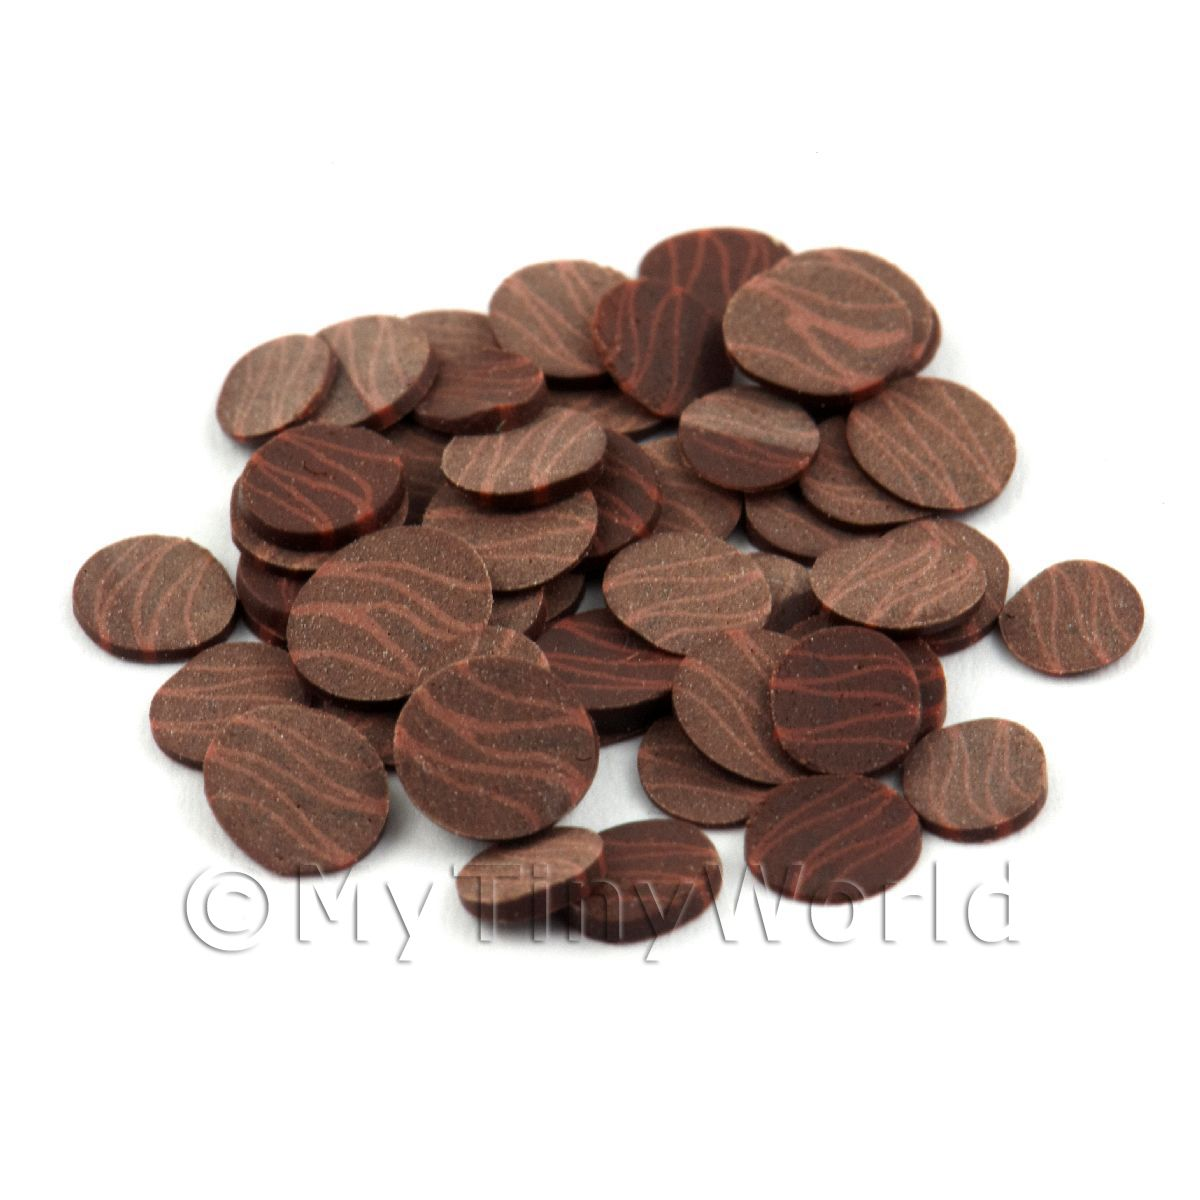 50 Dark / Milk Chocolate Slices - Nail Art (11NS39)